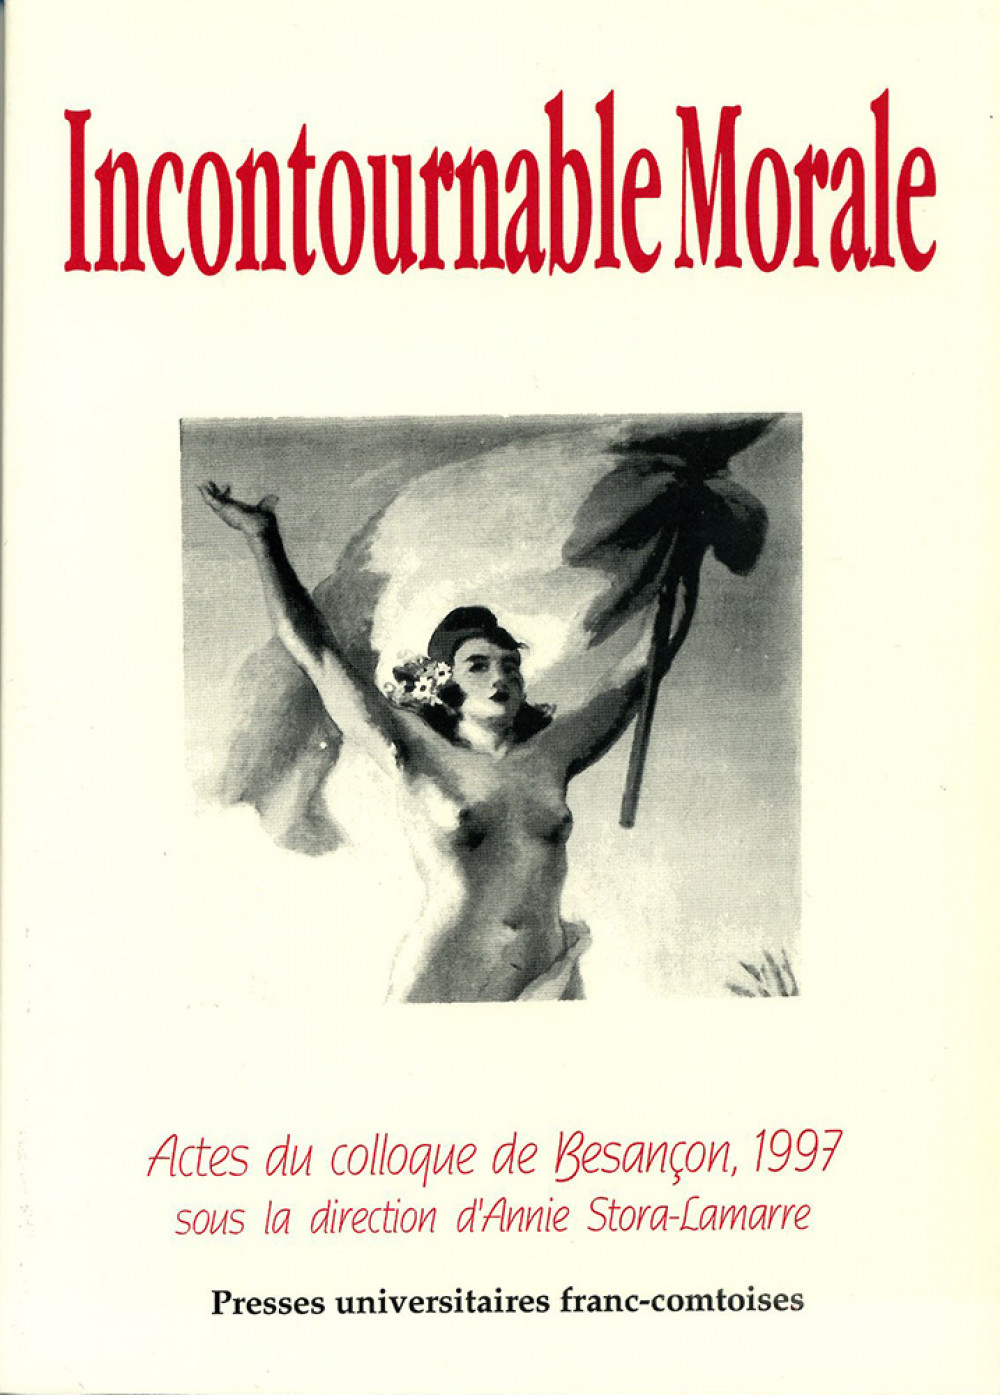 Incontournable morale